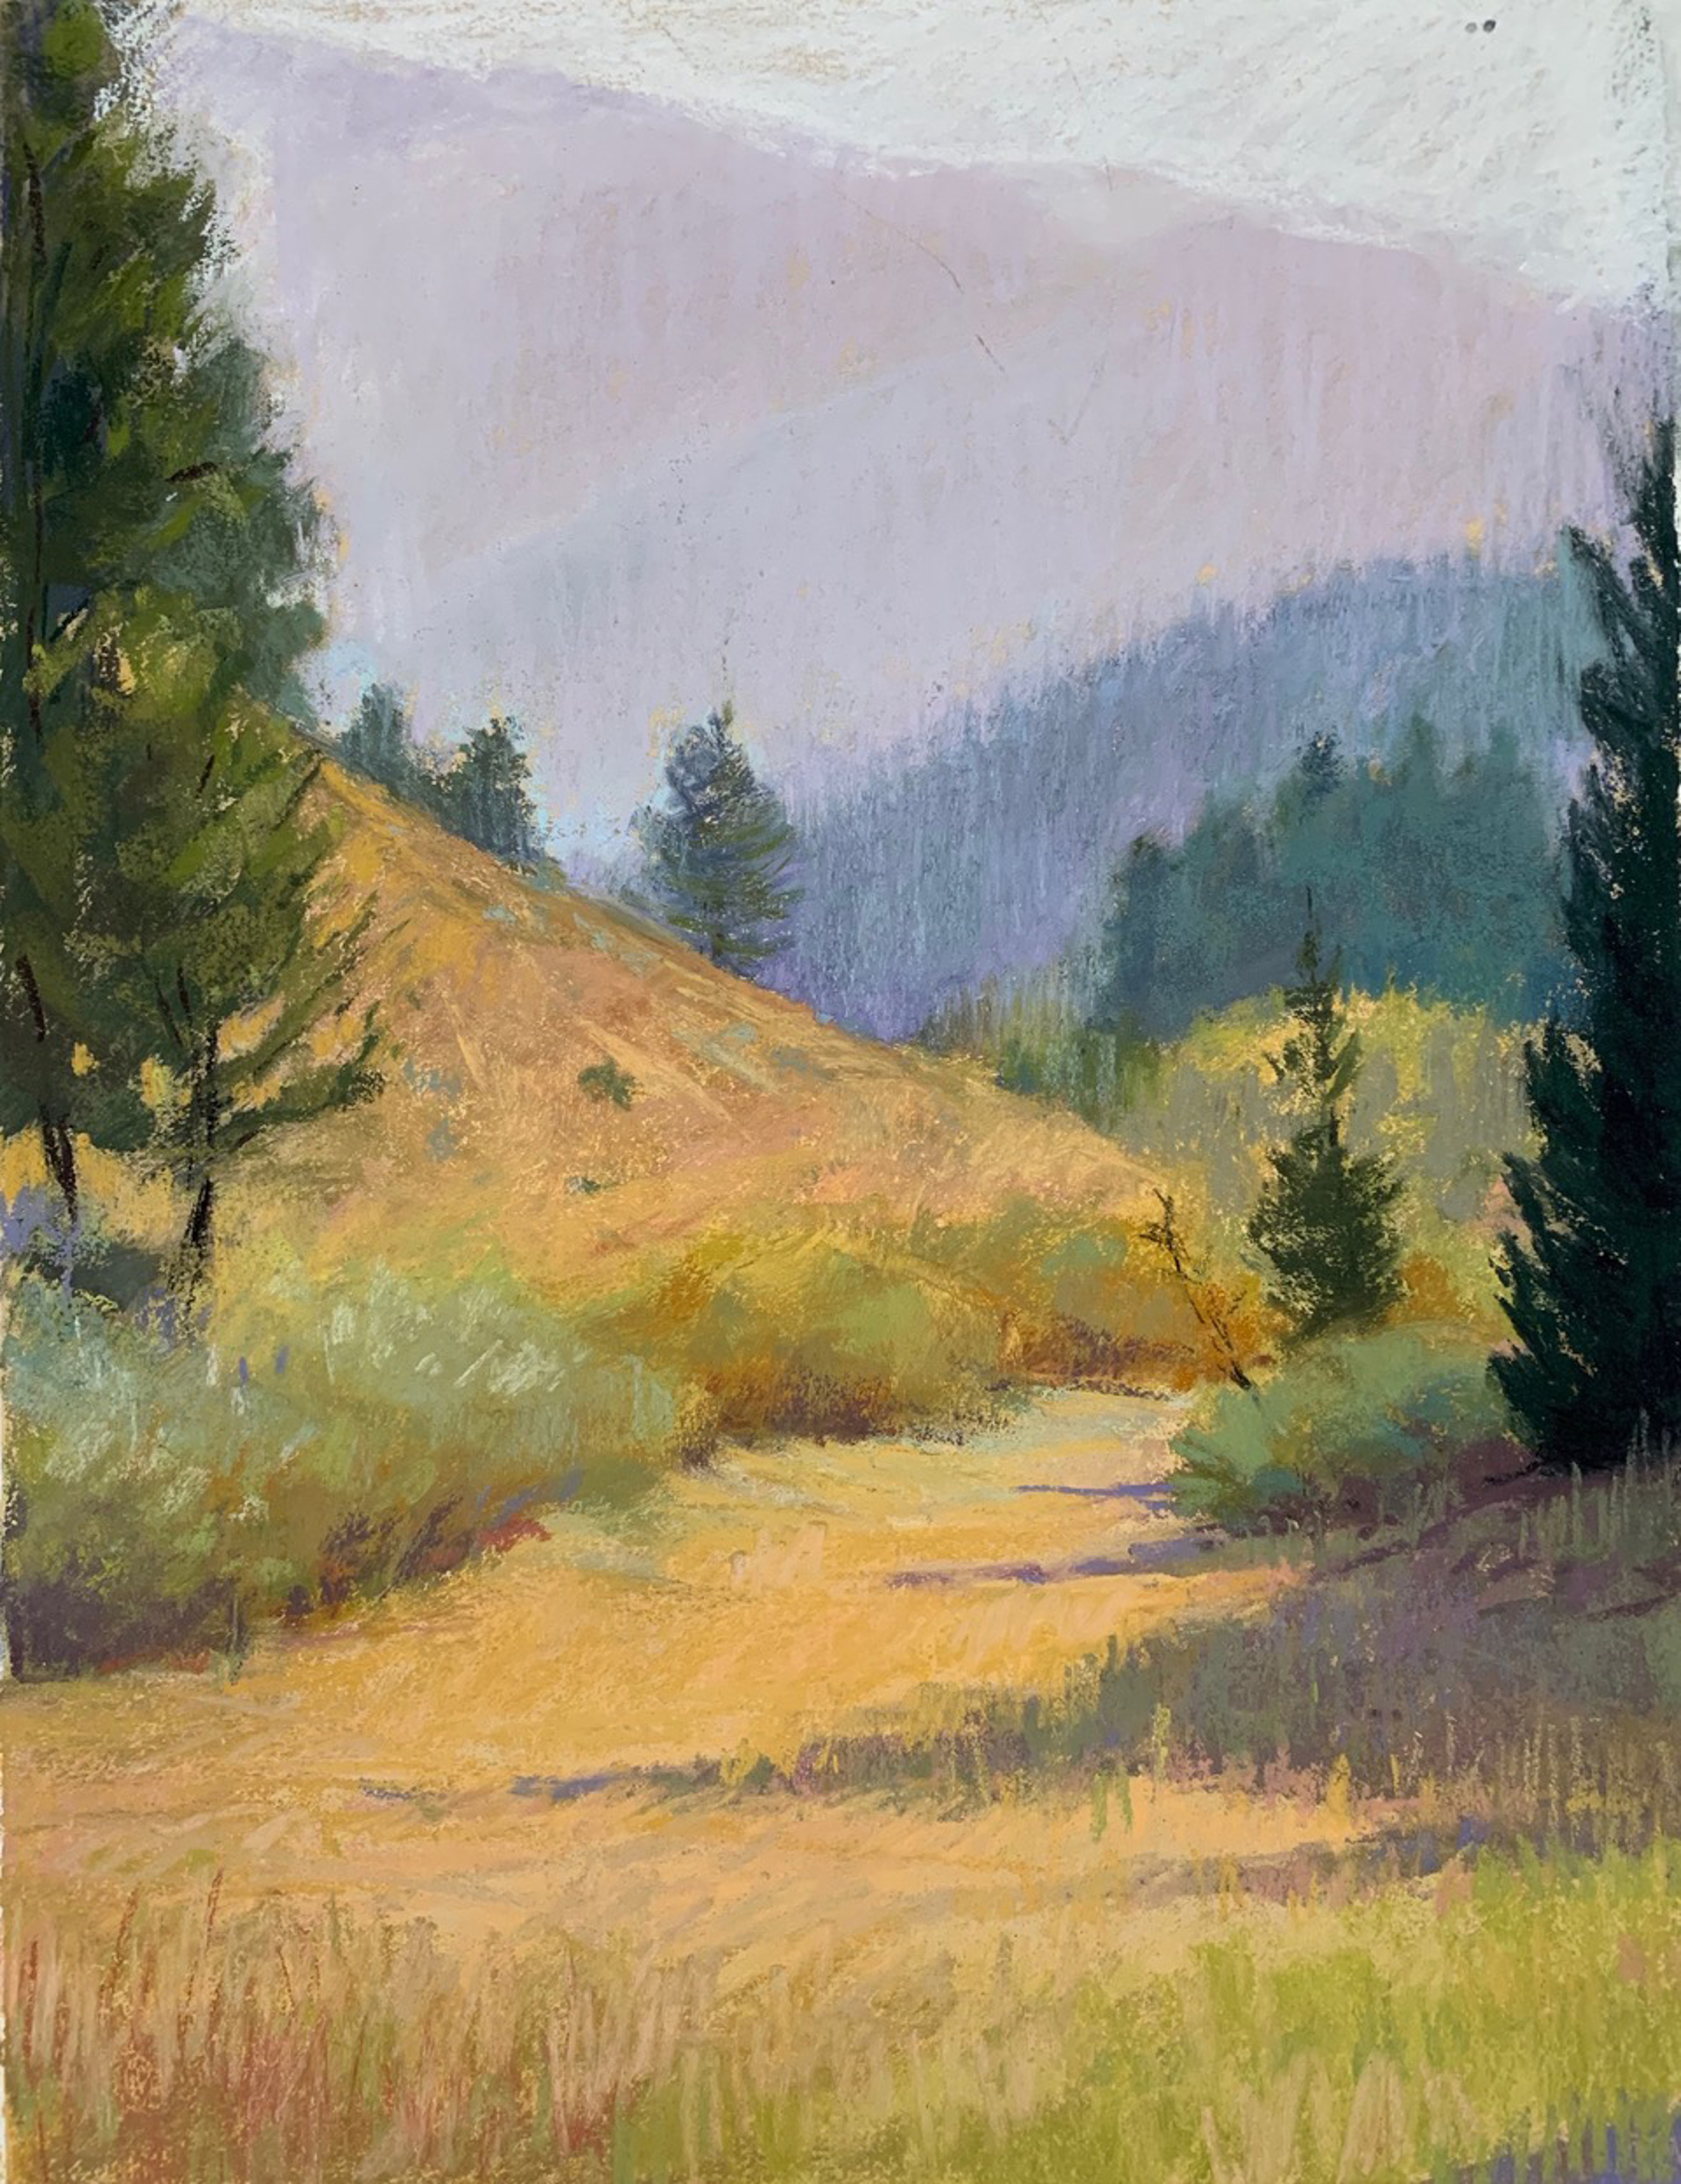 Big Sky Field-Plein Air Study by Lisa Gleim